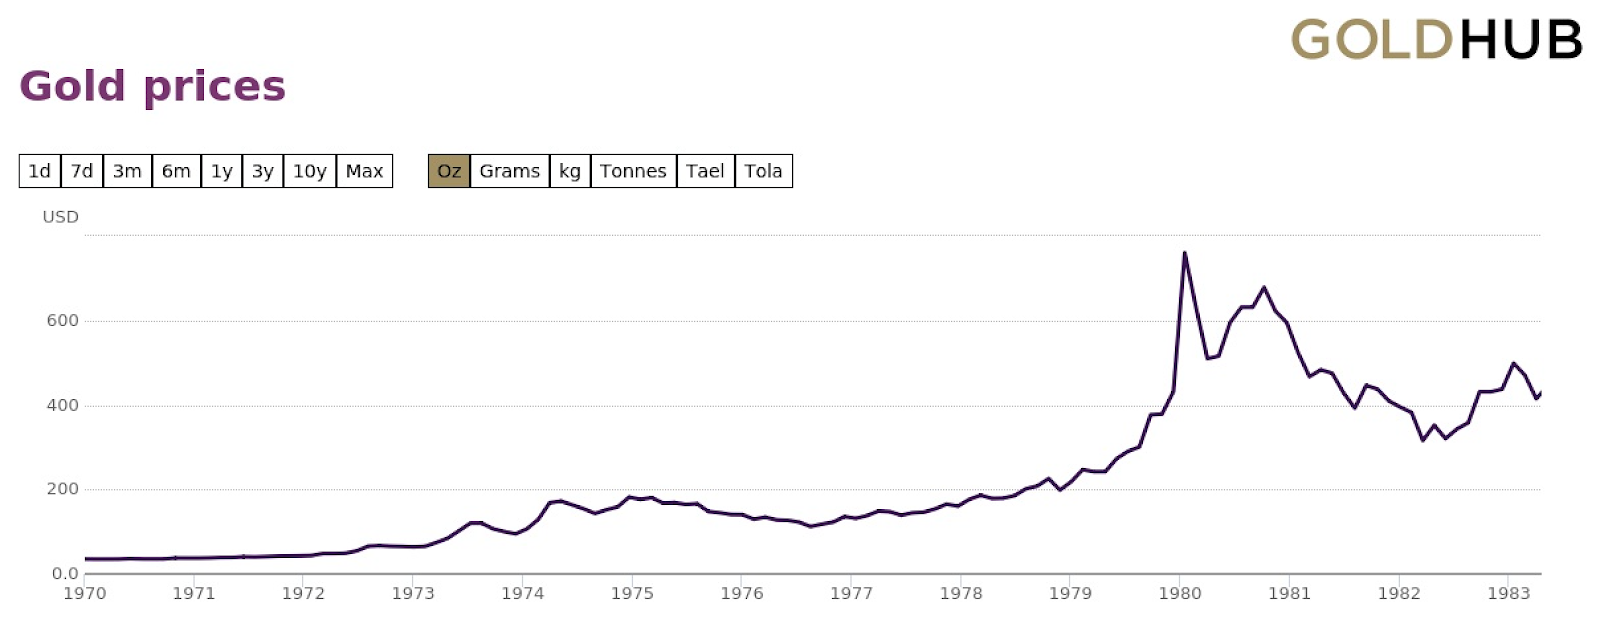 A chart showing the price of gold since 1970.